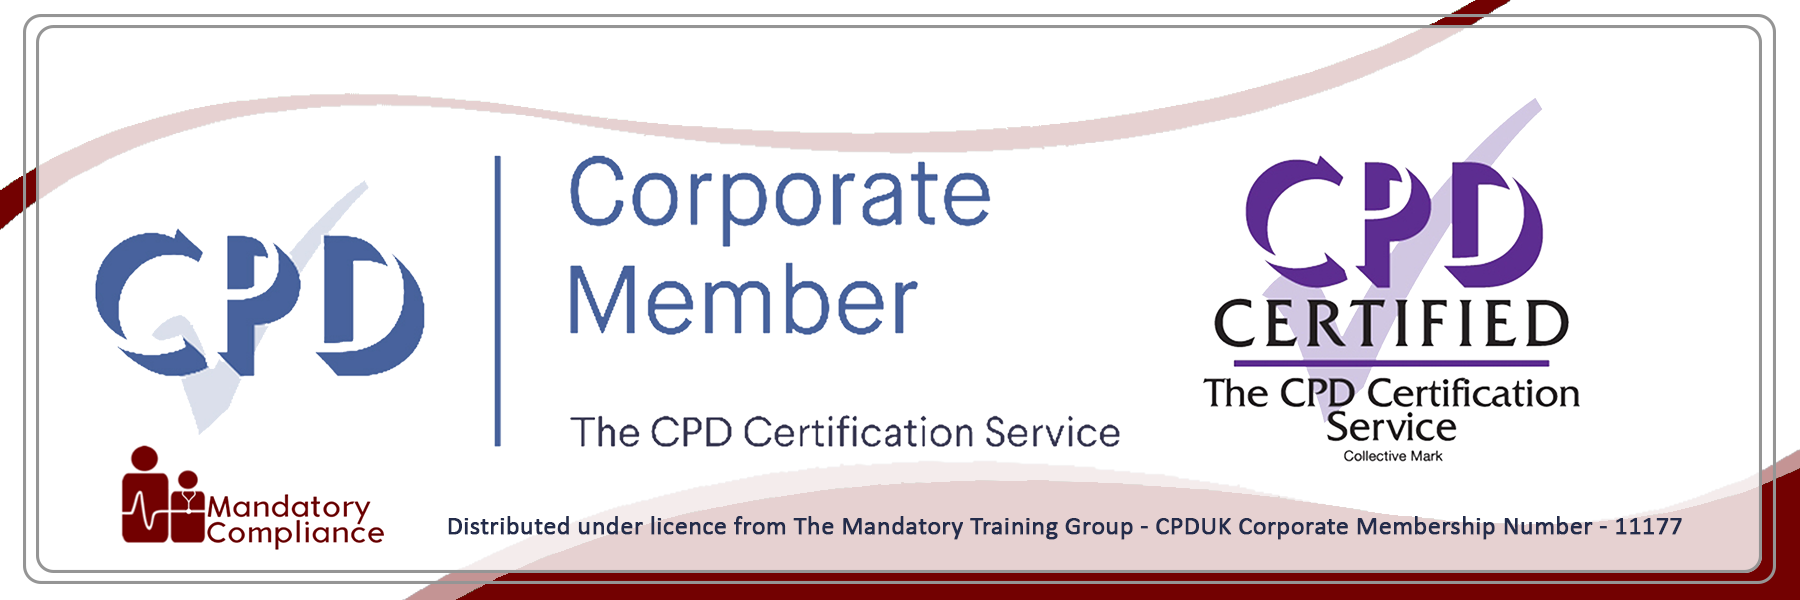 Clinical Audit - Online Learning Courses - E-Learning Courses - Mandatory Compliance UK---